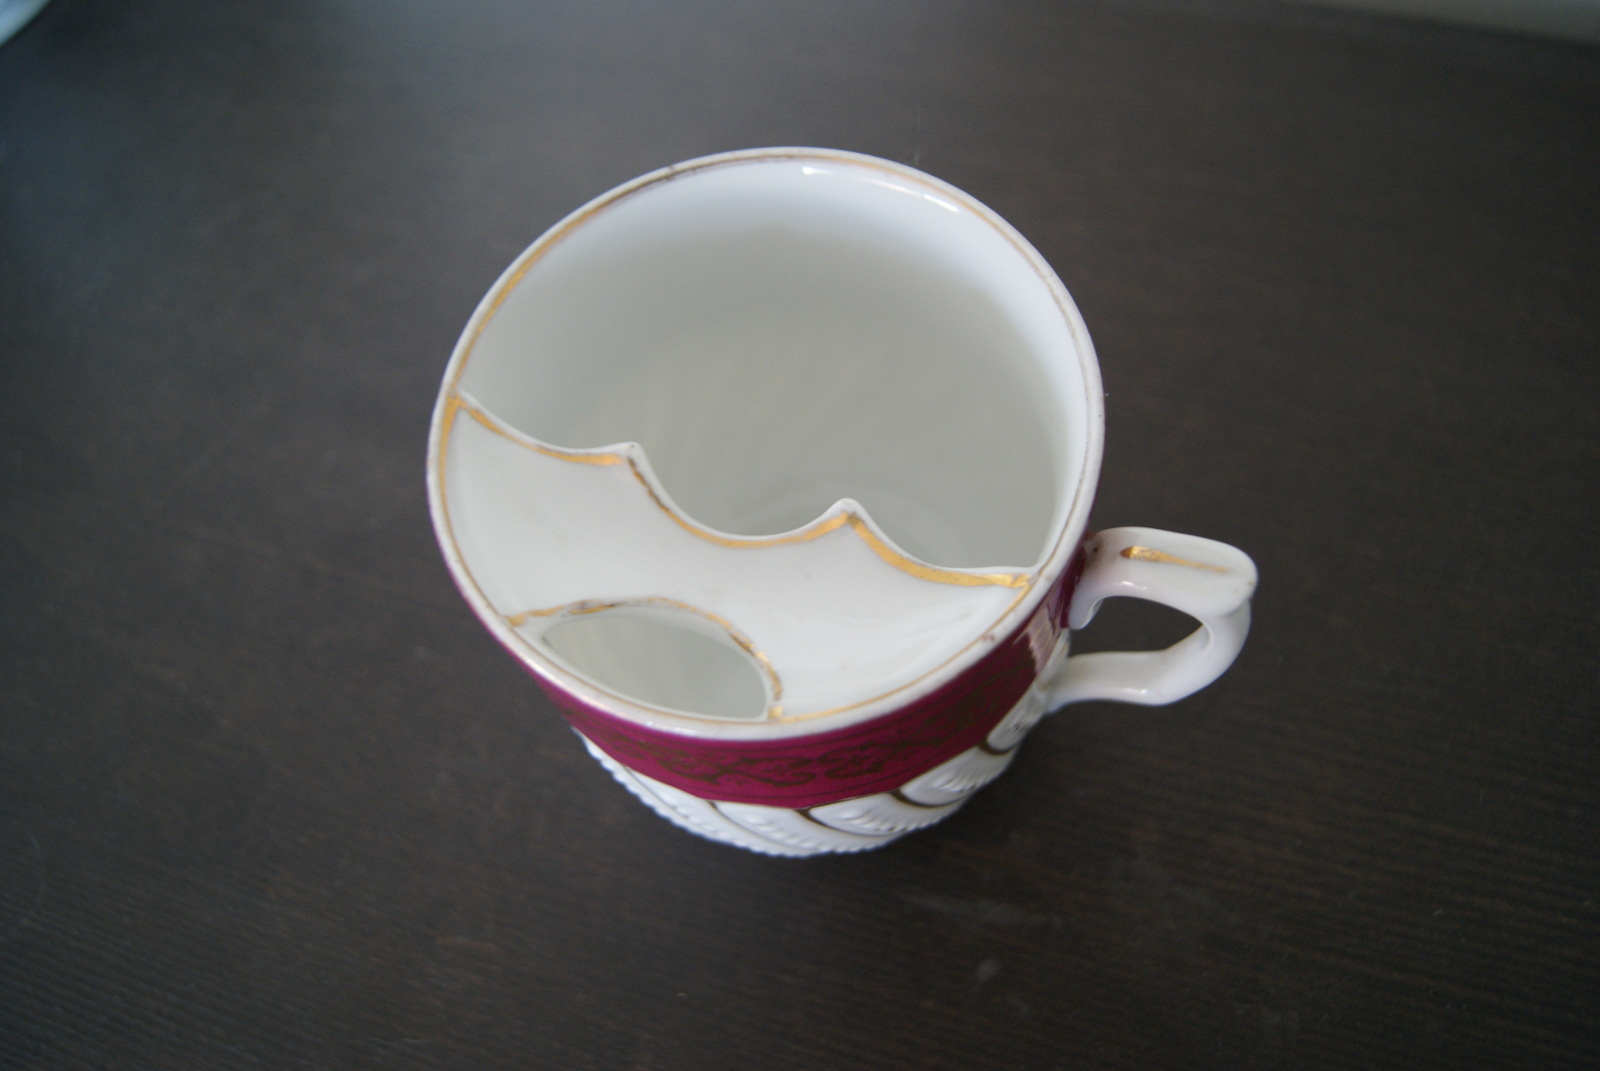 Waldenburg - Altwasser mustache cup with red band golden decor and relief